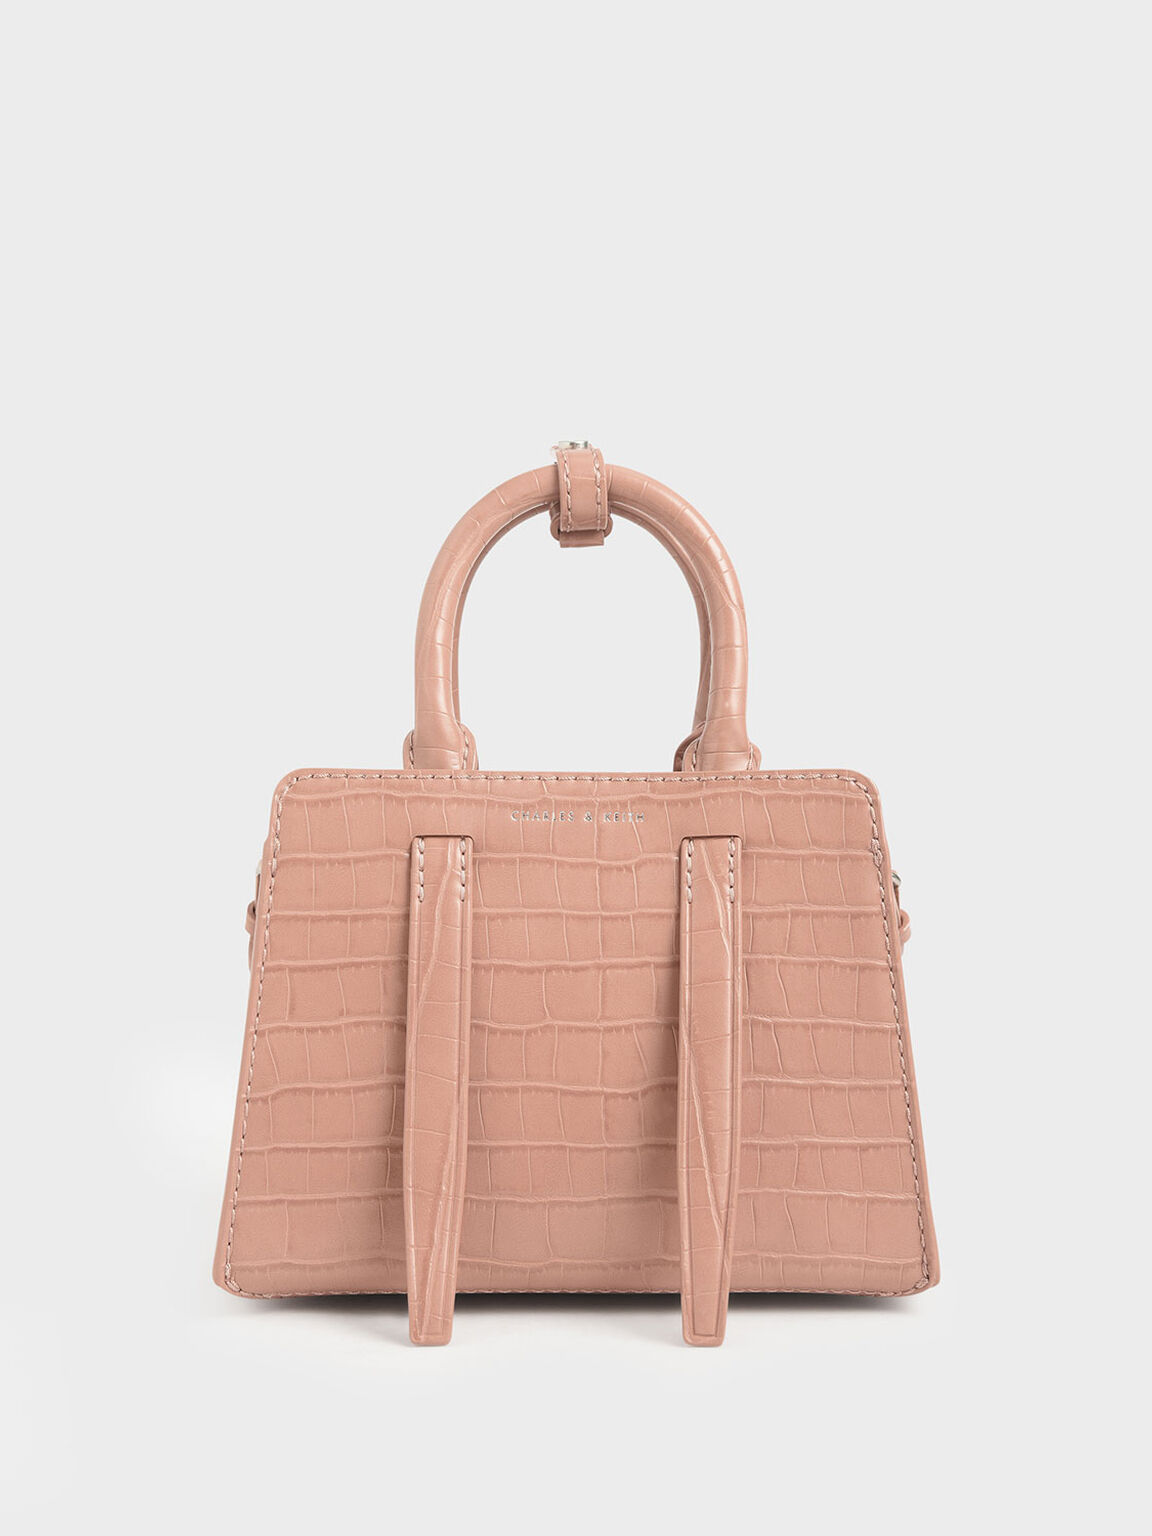 Croc-Effect Top Handle Bag, Blush, hi-res